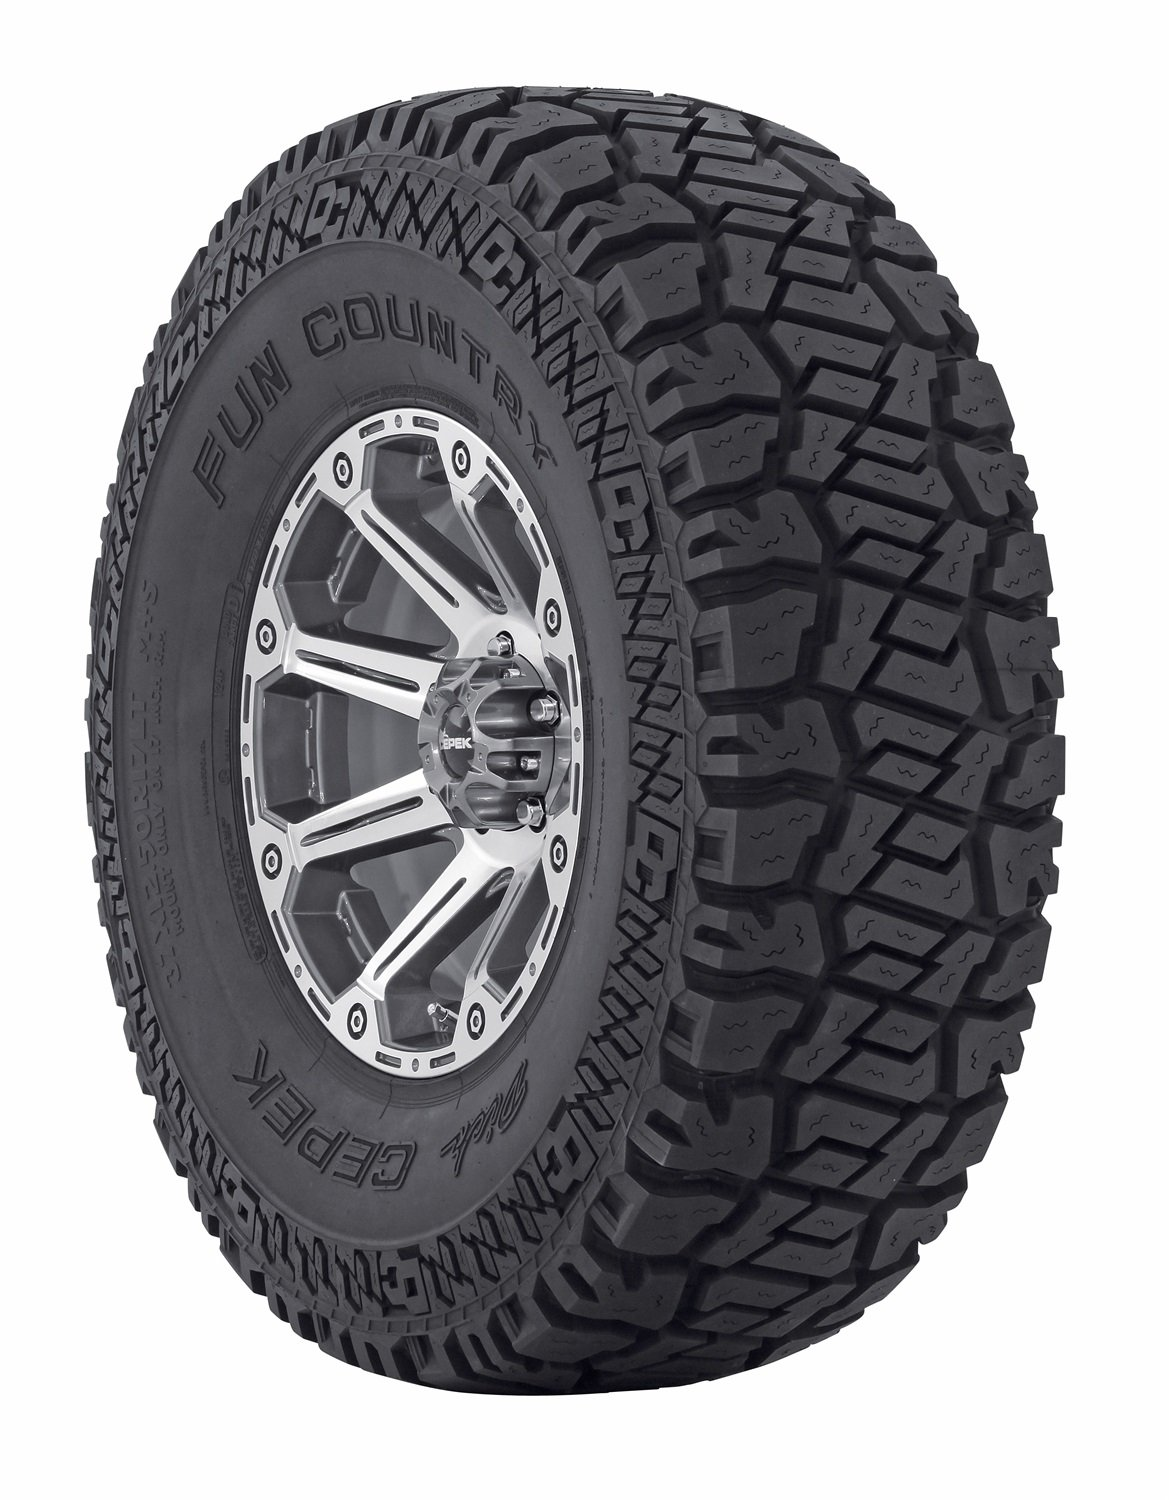 4. Dick Cepek Fun Country All-Terrain Radial Tire